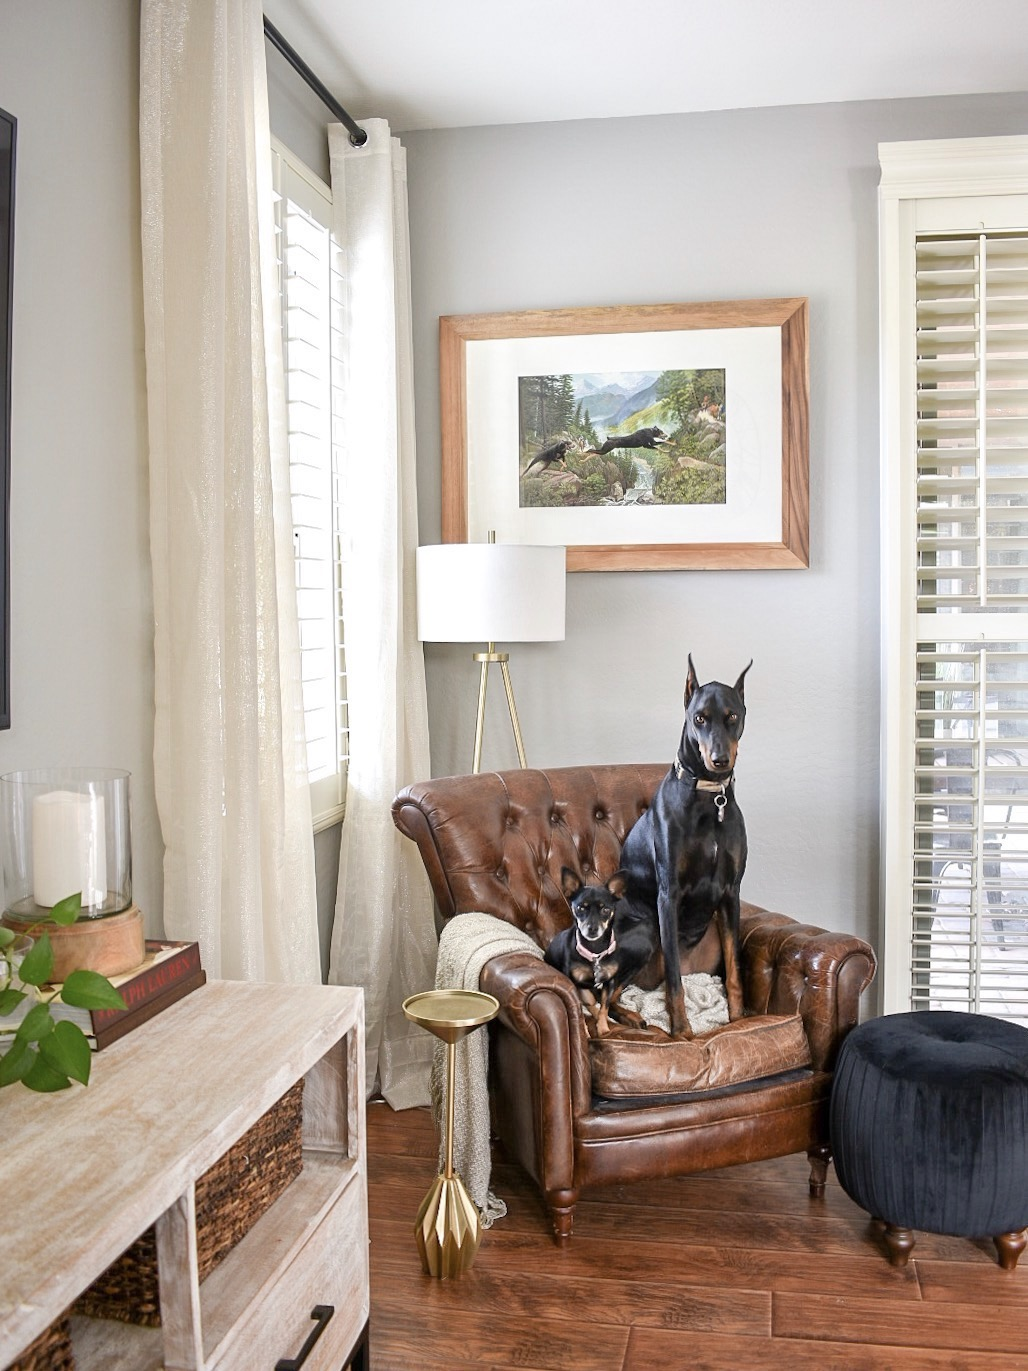 Rooms Designed For Dogs: Dogs & Design